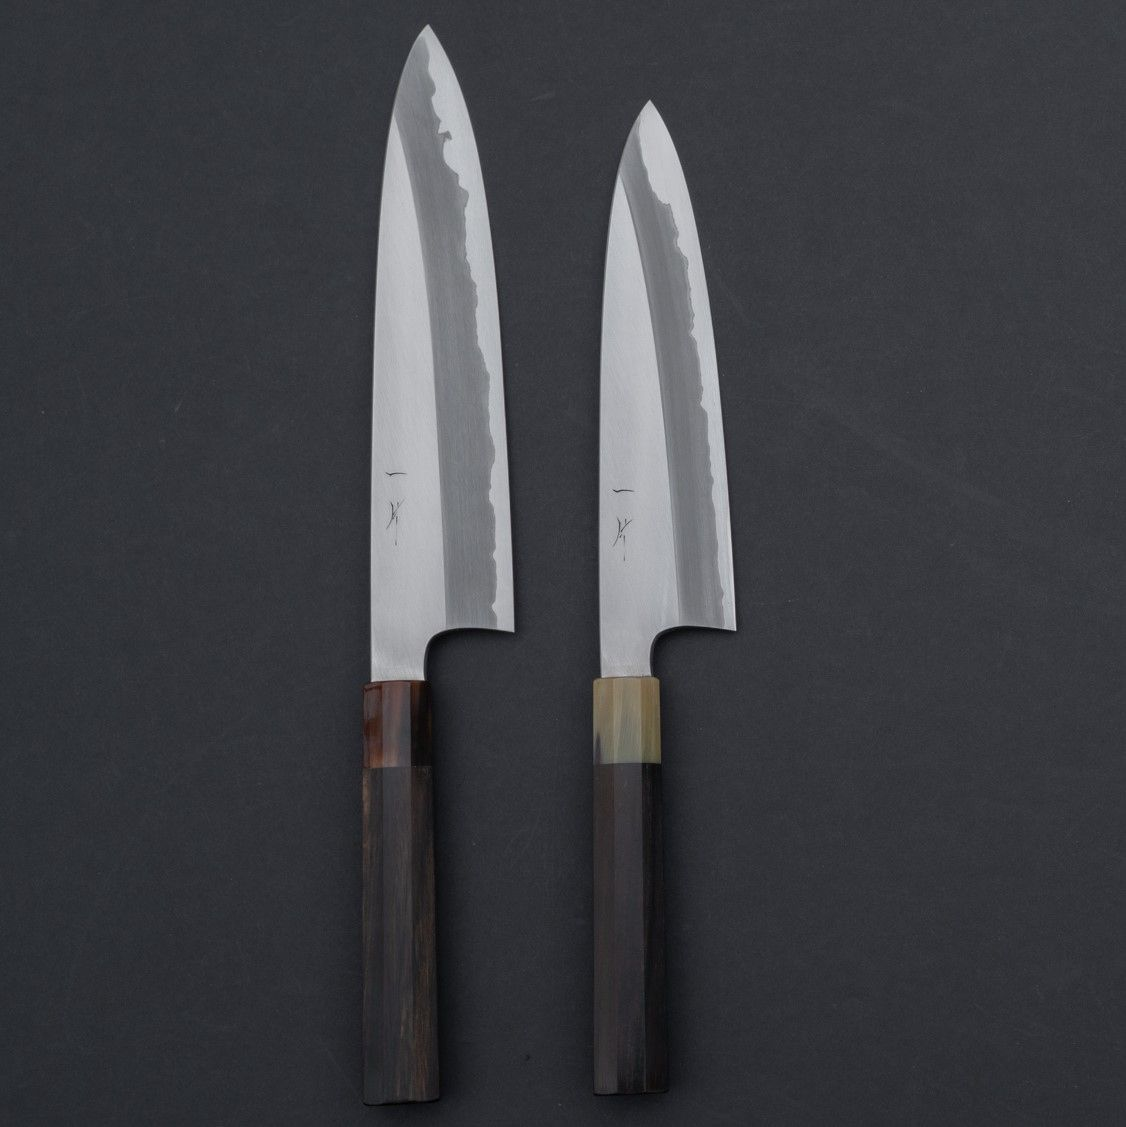 Togashi Blue 1stainless Clad One Of The Best Exiting Knives